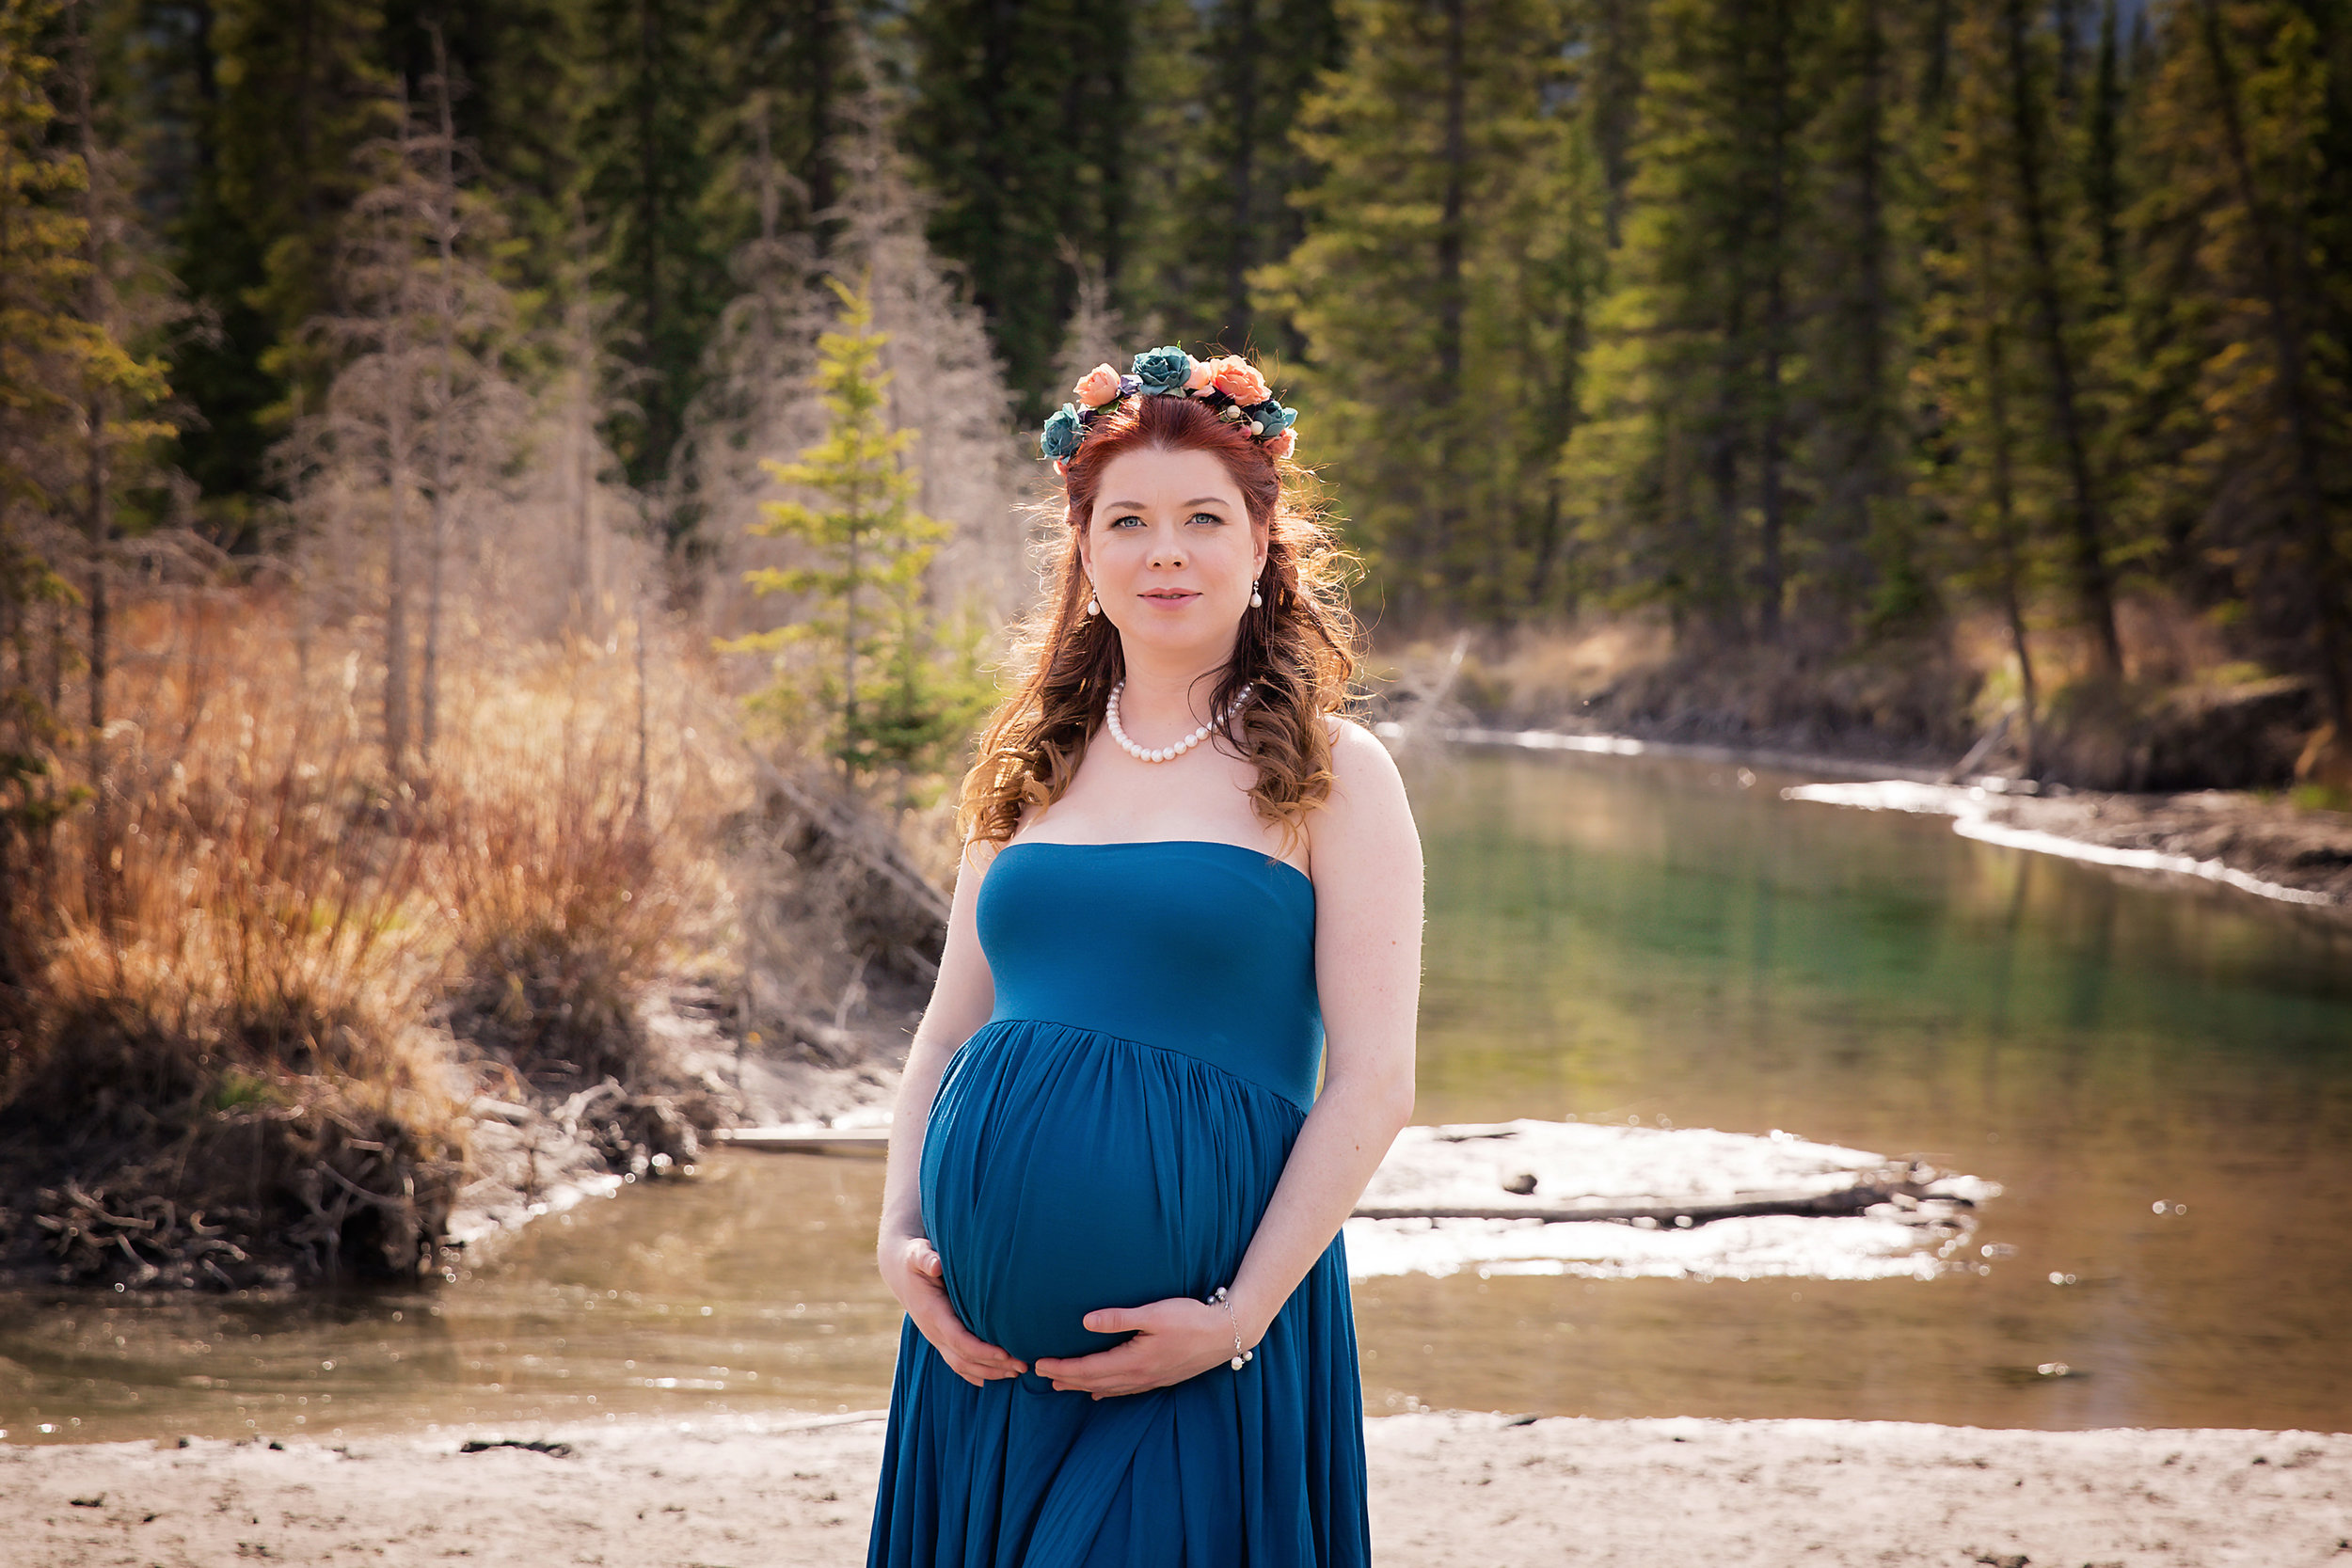 Mother - to - be is posing for the camera wearing a blue gown in-front of a river and trees in this mountain maternity session in Kananaskis country, Alberta, Canada.